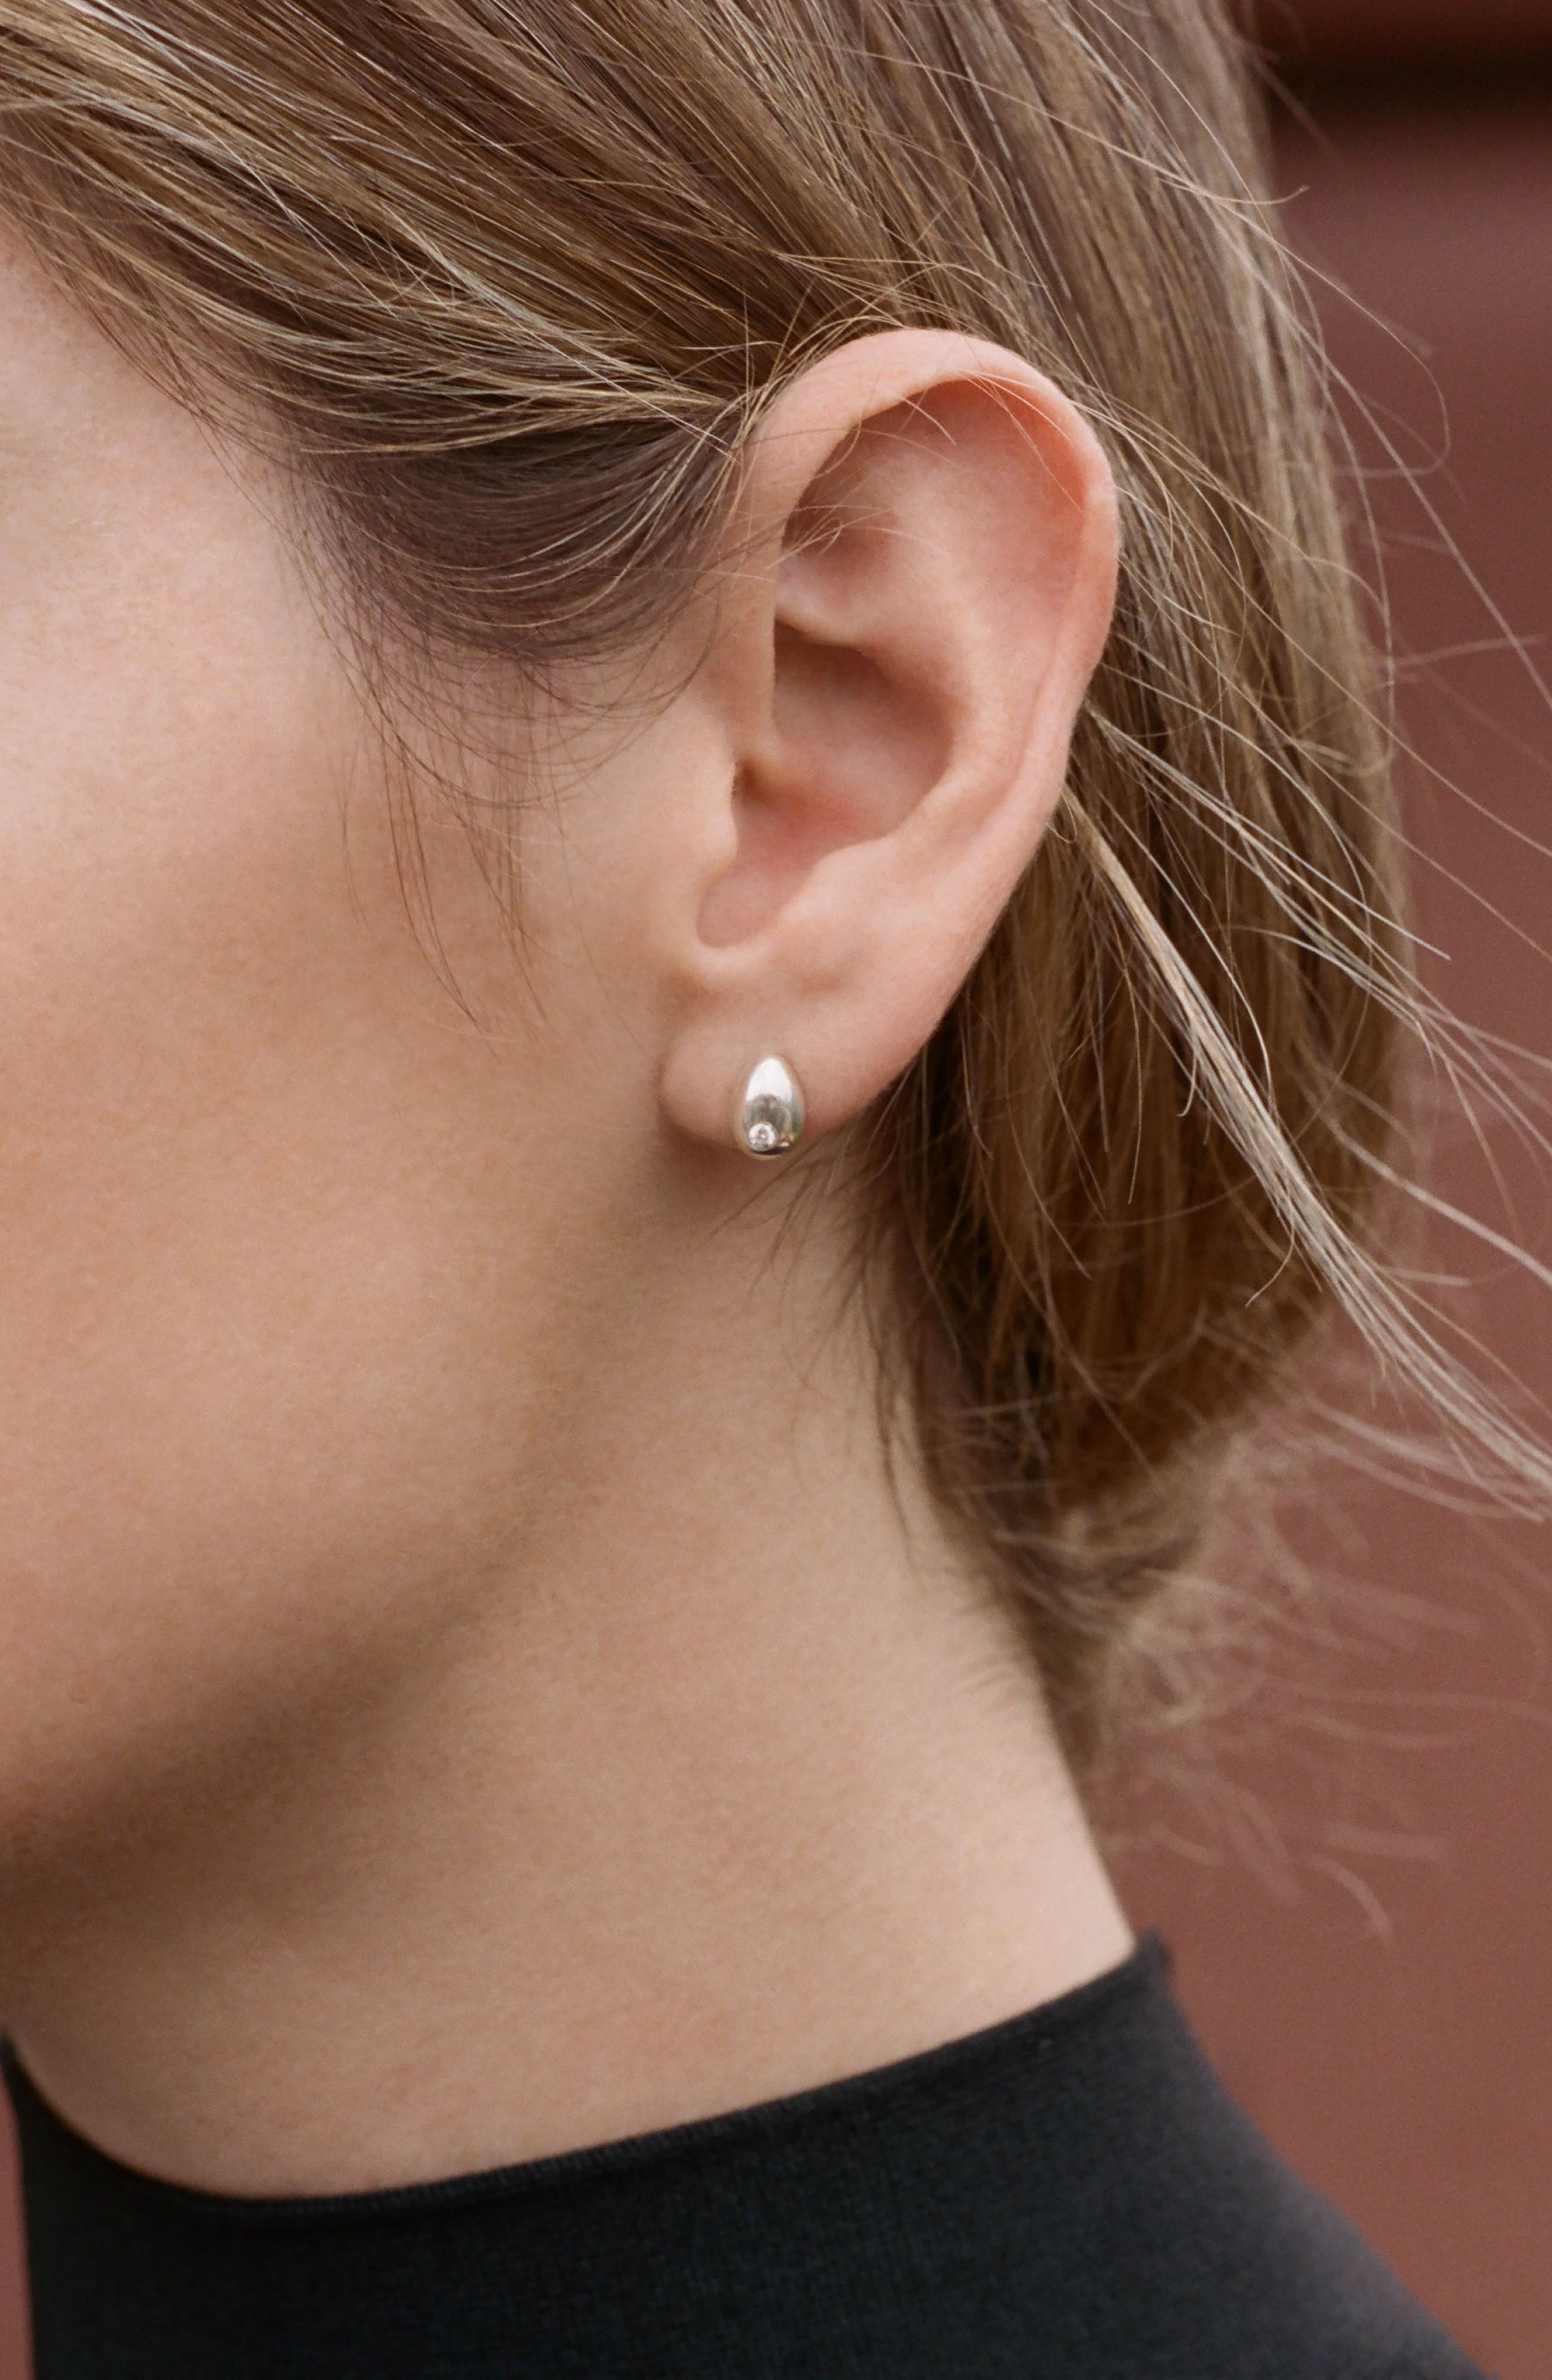 Tiny Egg Diamond Stud Earrings,                             Alternate thumbnail 2, color,                             Silver